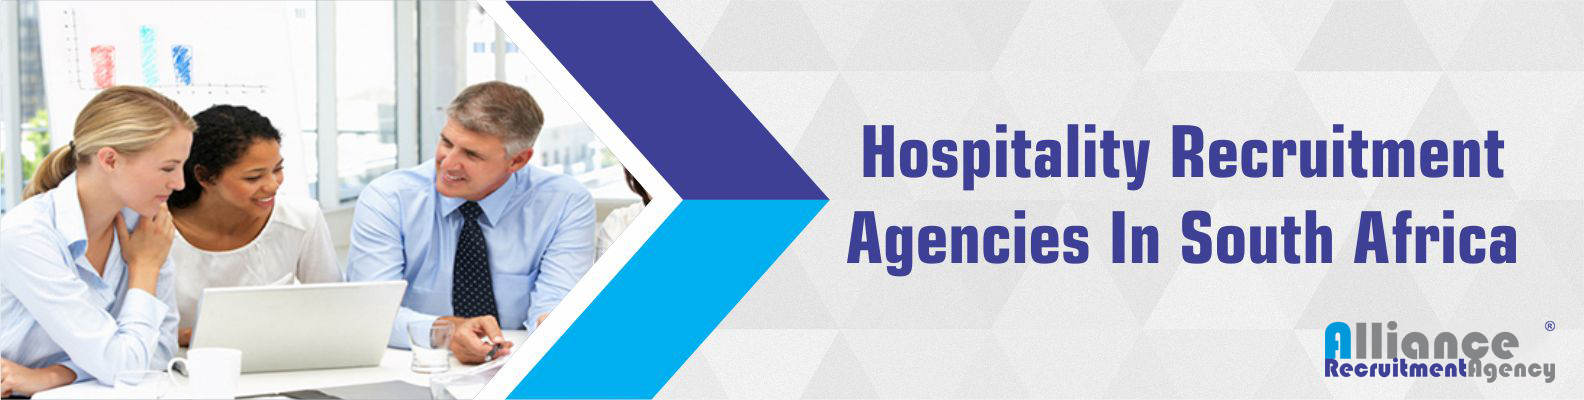 Hospitality Recruitment Agencies In South Africa